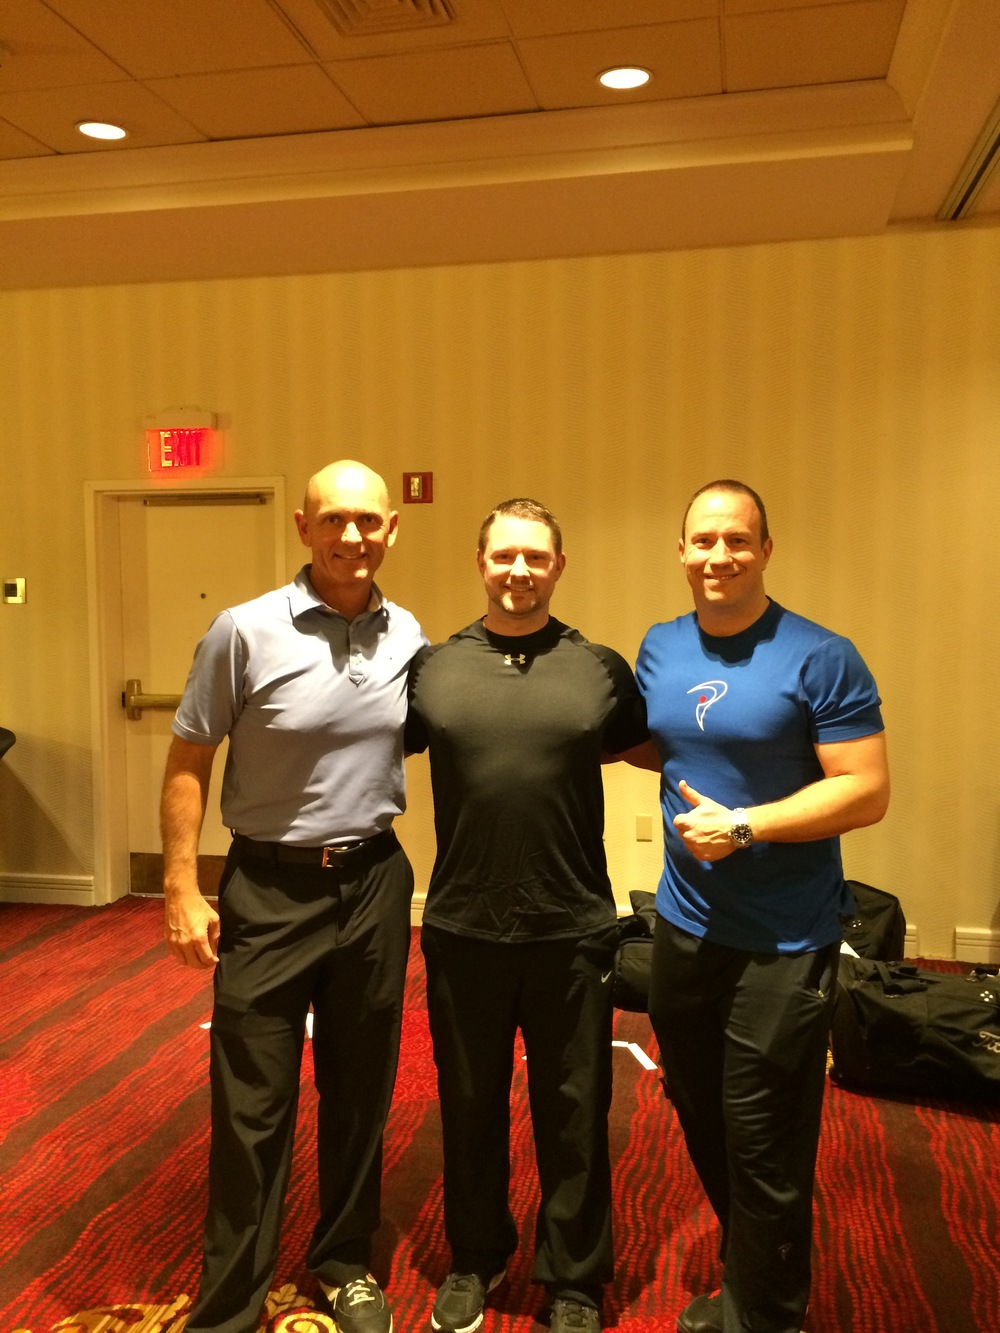 With Dave Phillips, PGA Pro Teacher (L) and Jason Glass, TPI Instructor and Strength Coach (R)